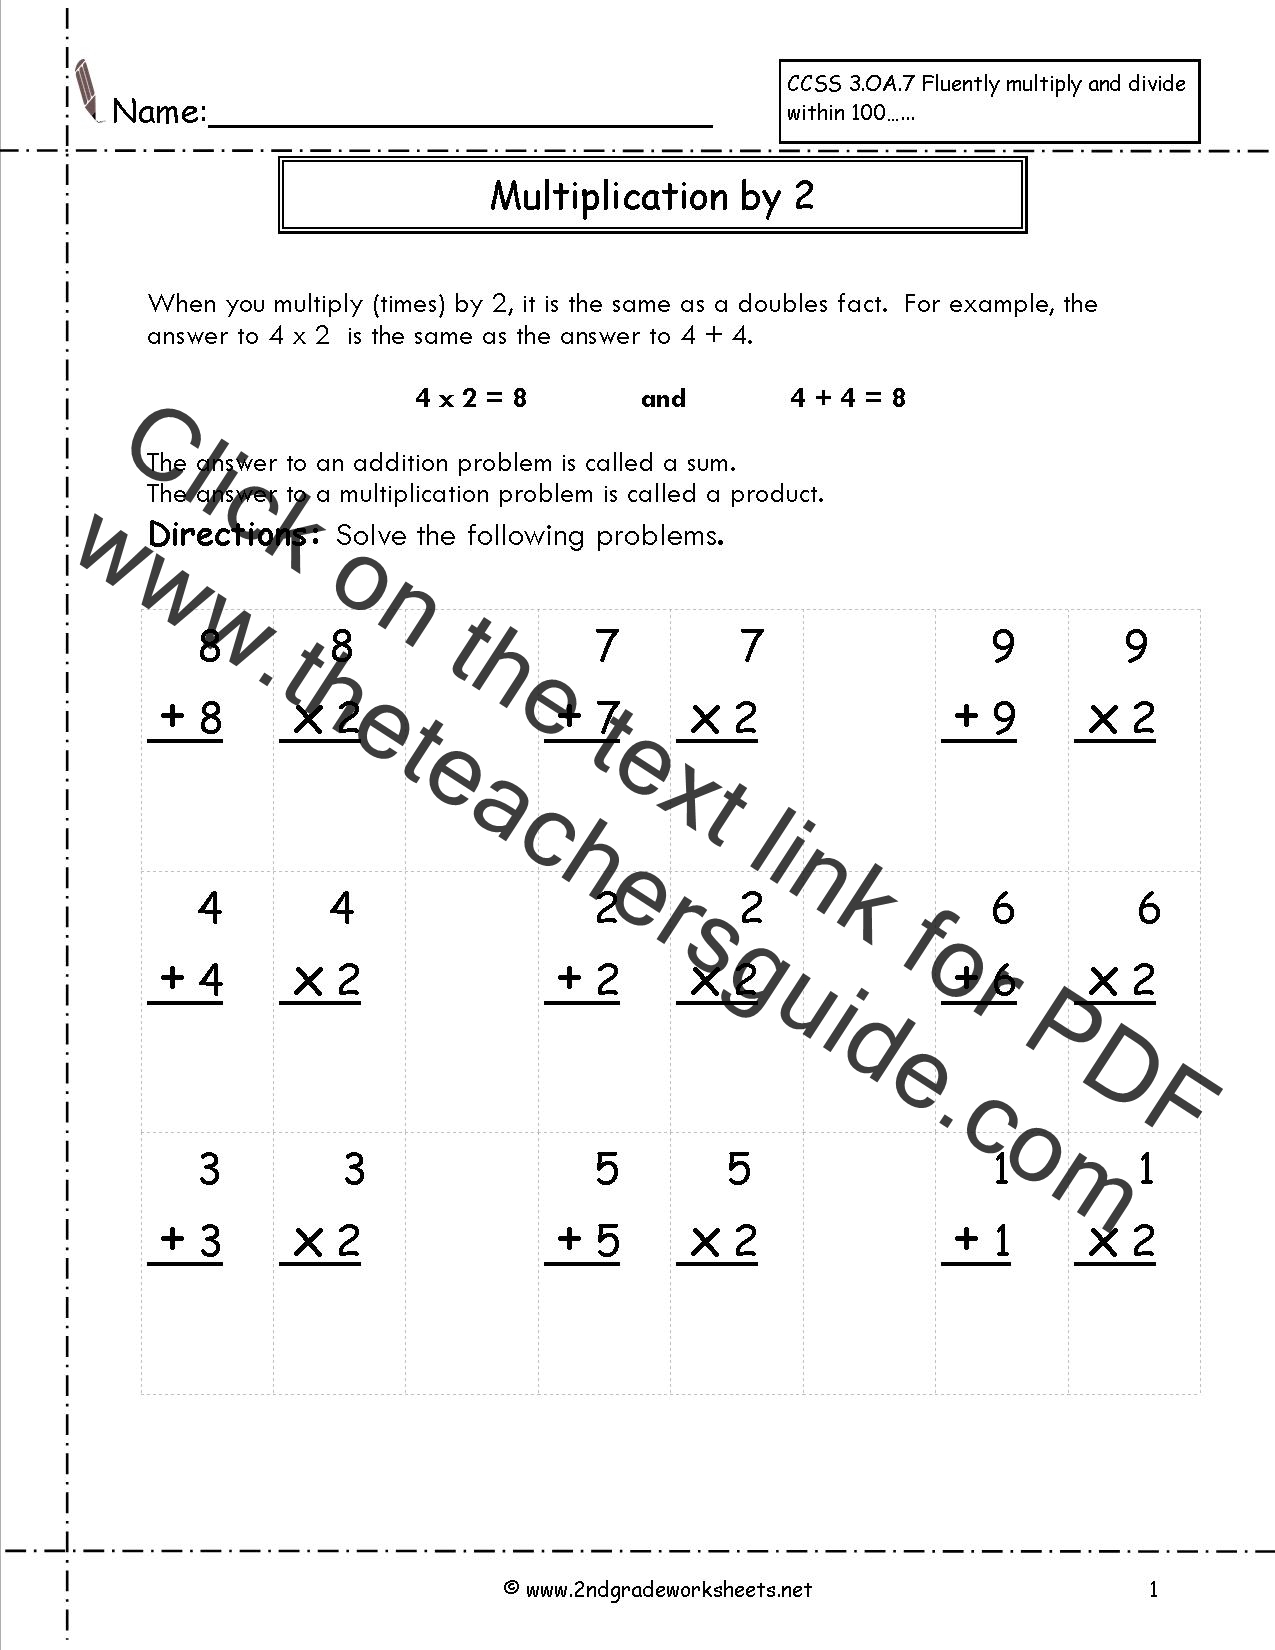 Multiplication 012 Worksheets – Multiplication 0-12 Worksheets